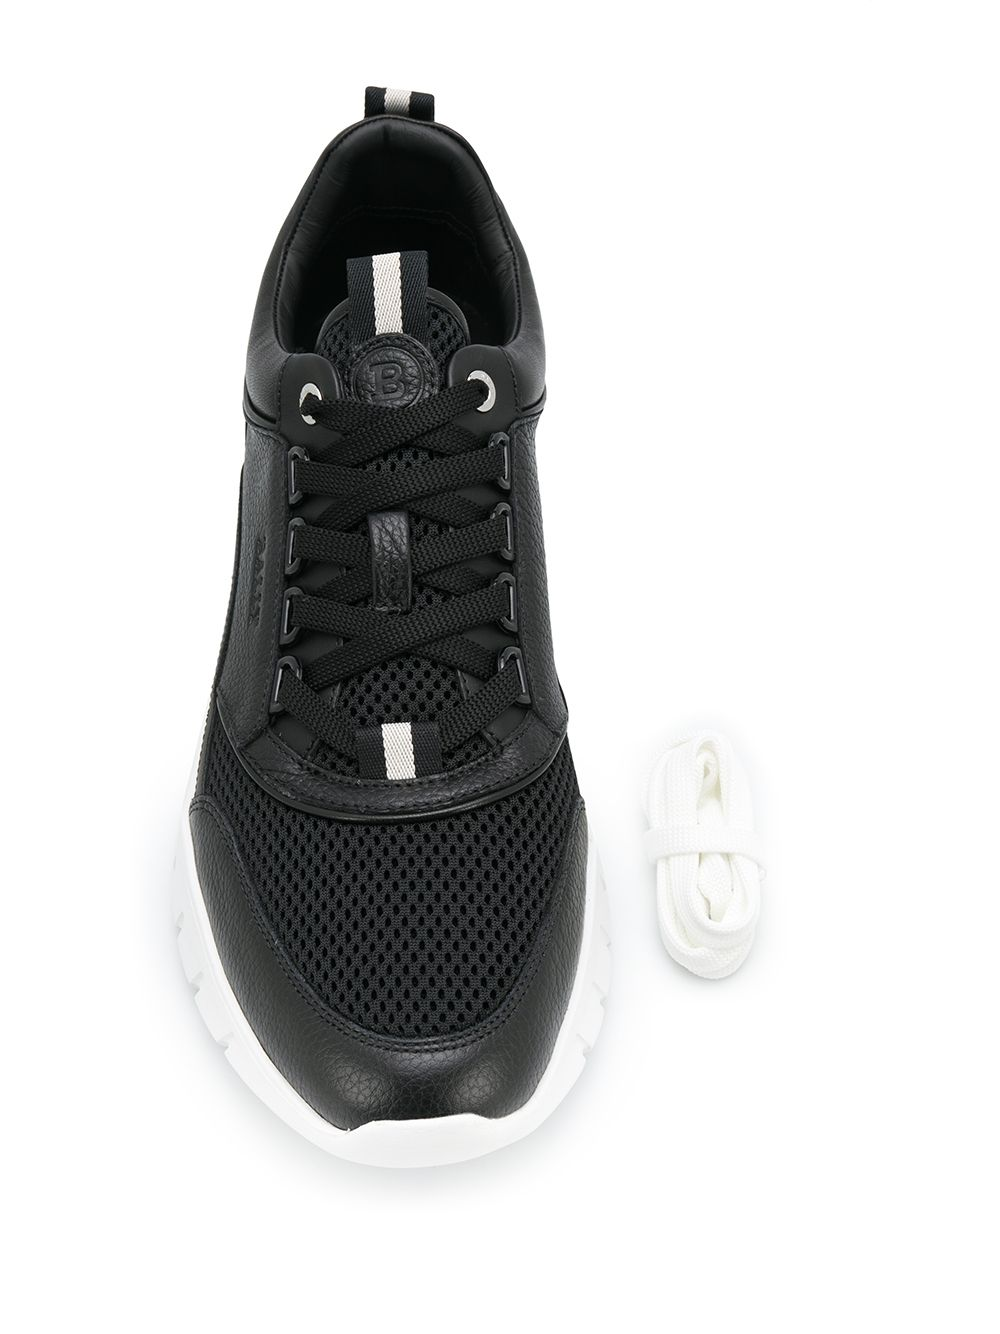 Picture of Bally | High Top Platform Sneakers